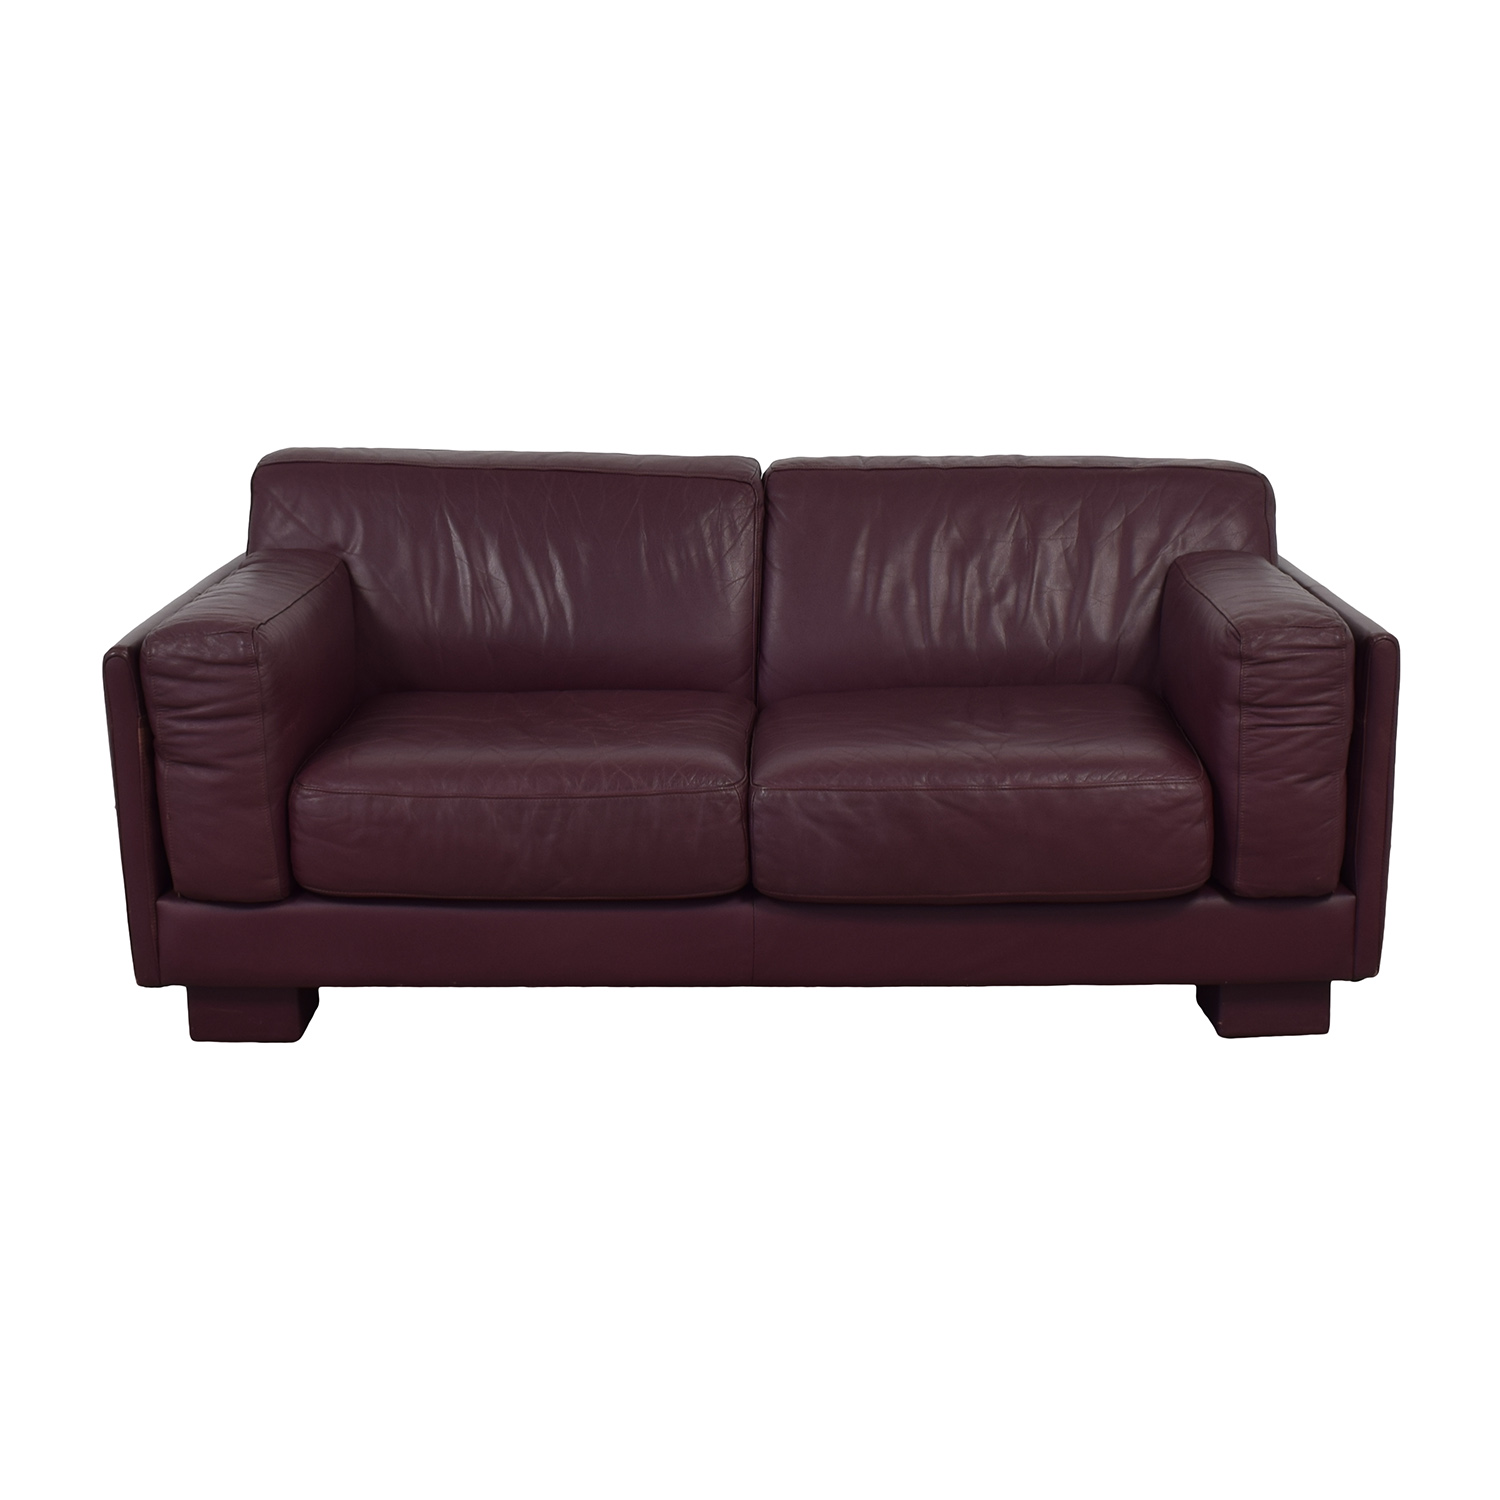 buy Leather Center Burgundy Leather Two-Cushion Loveseat Leather Center